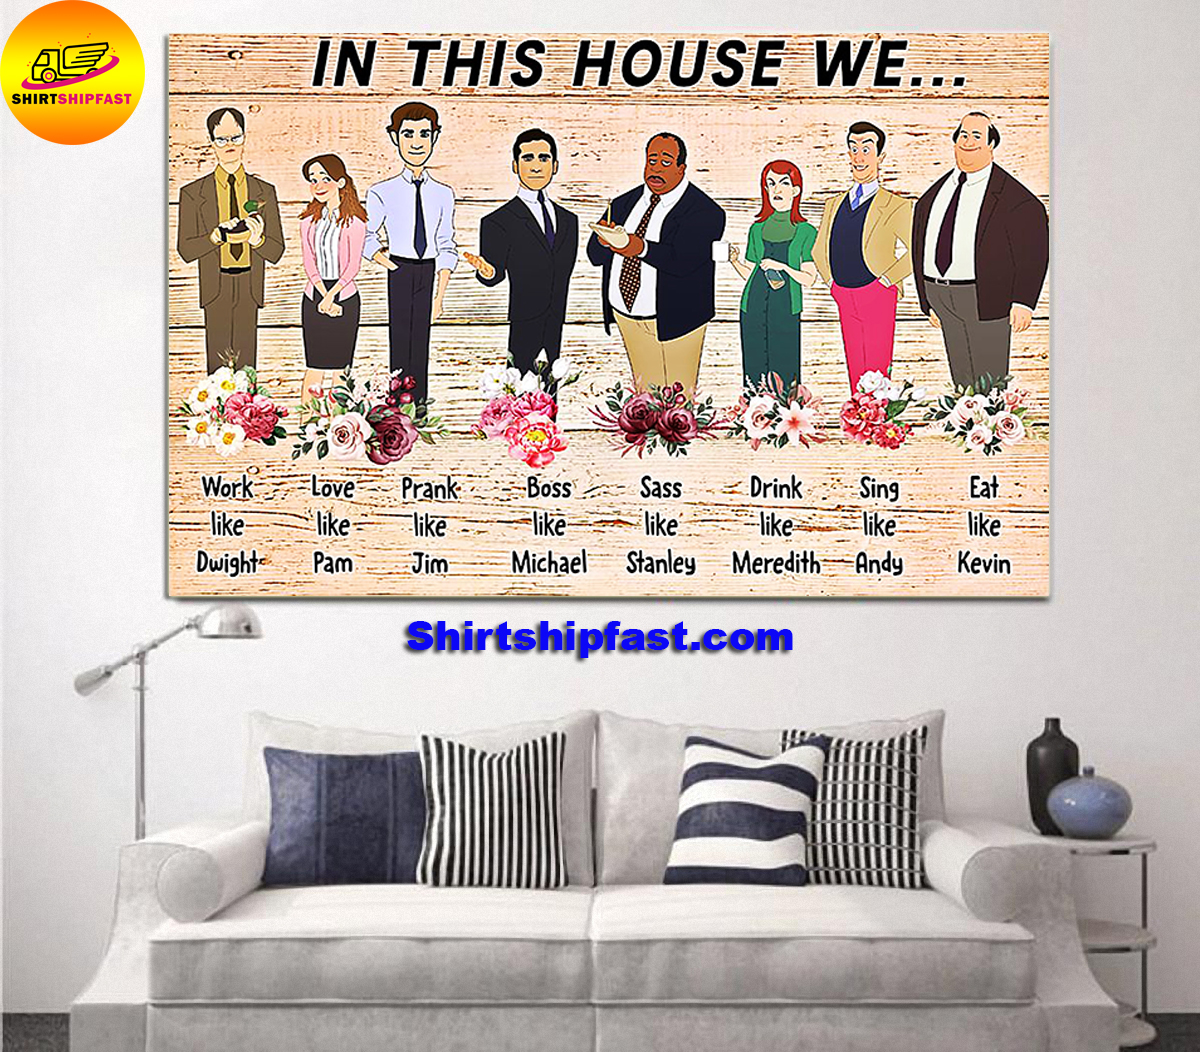 The office in this house we work like Dwight poster - Picture 1